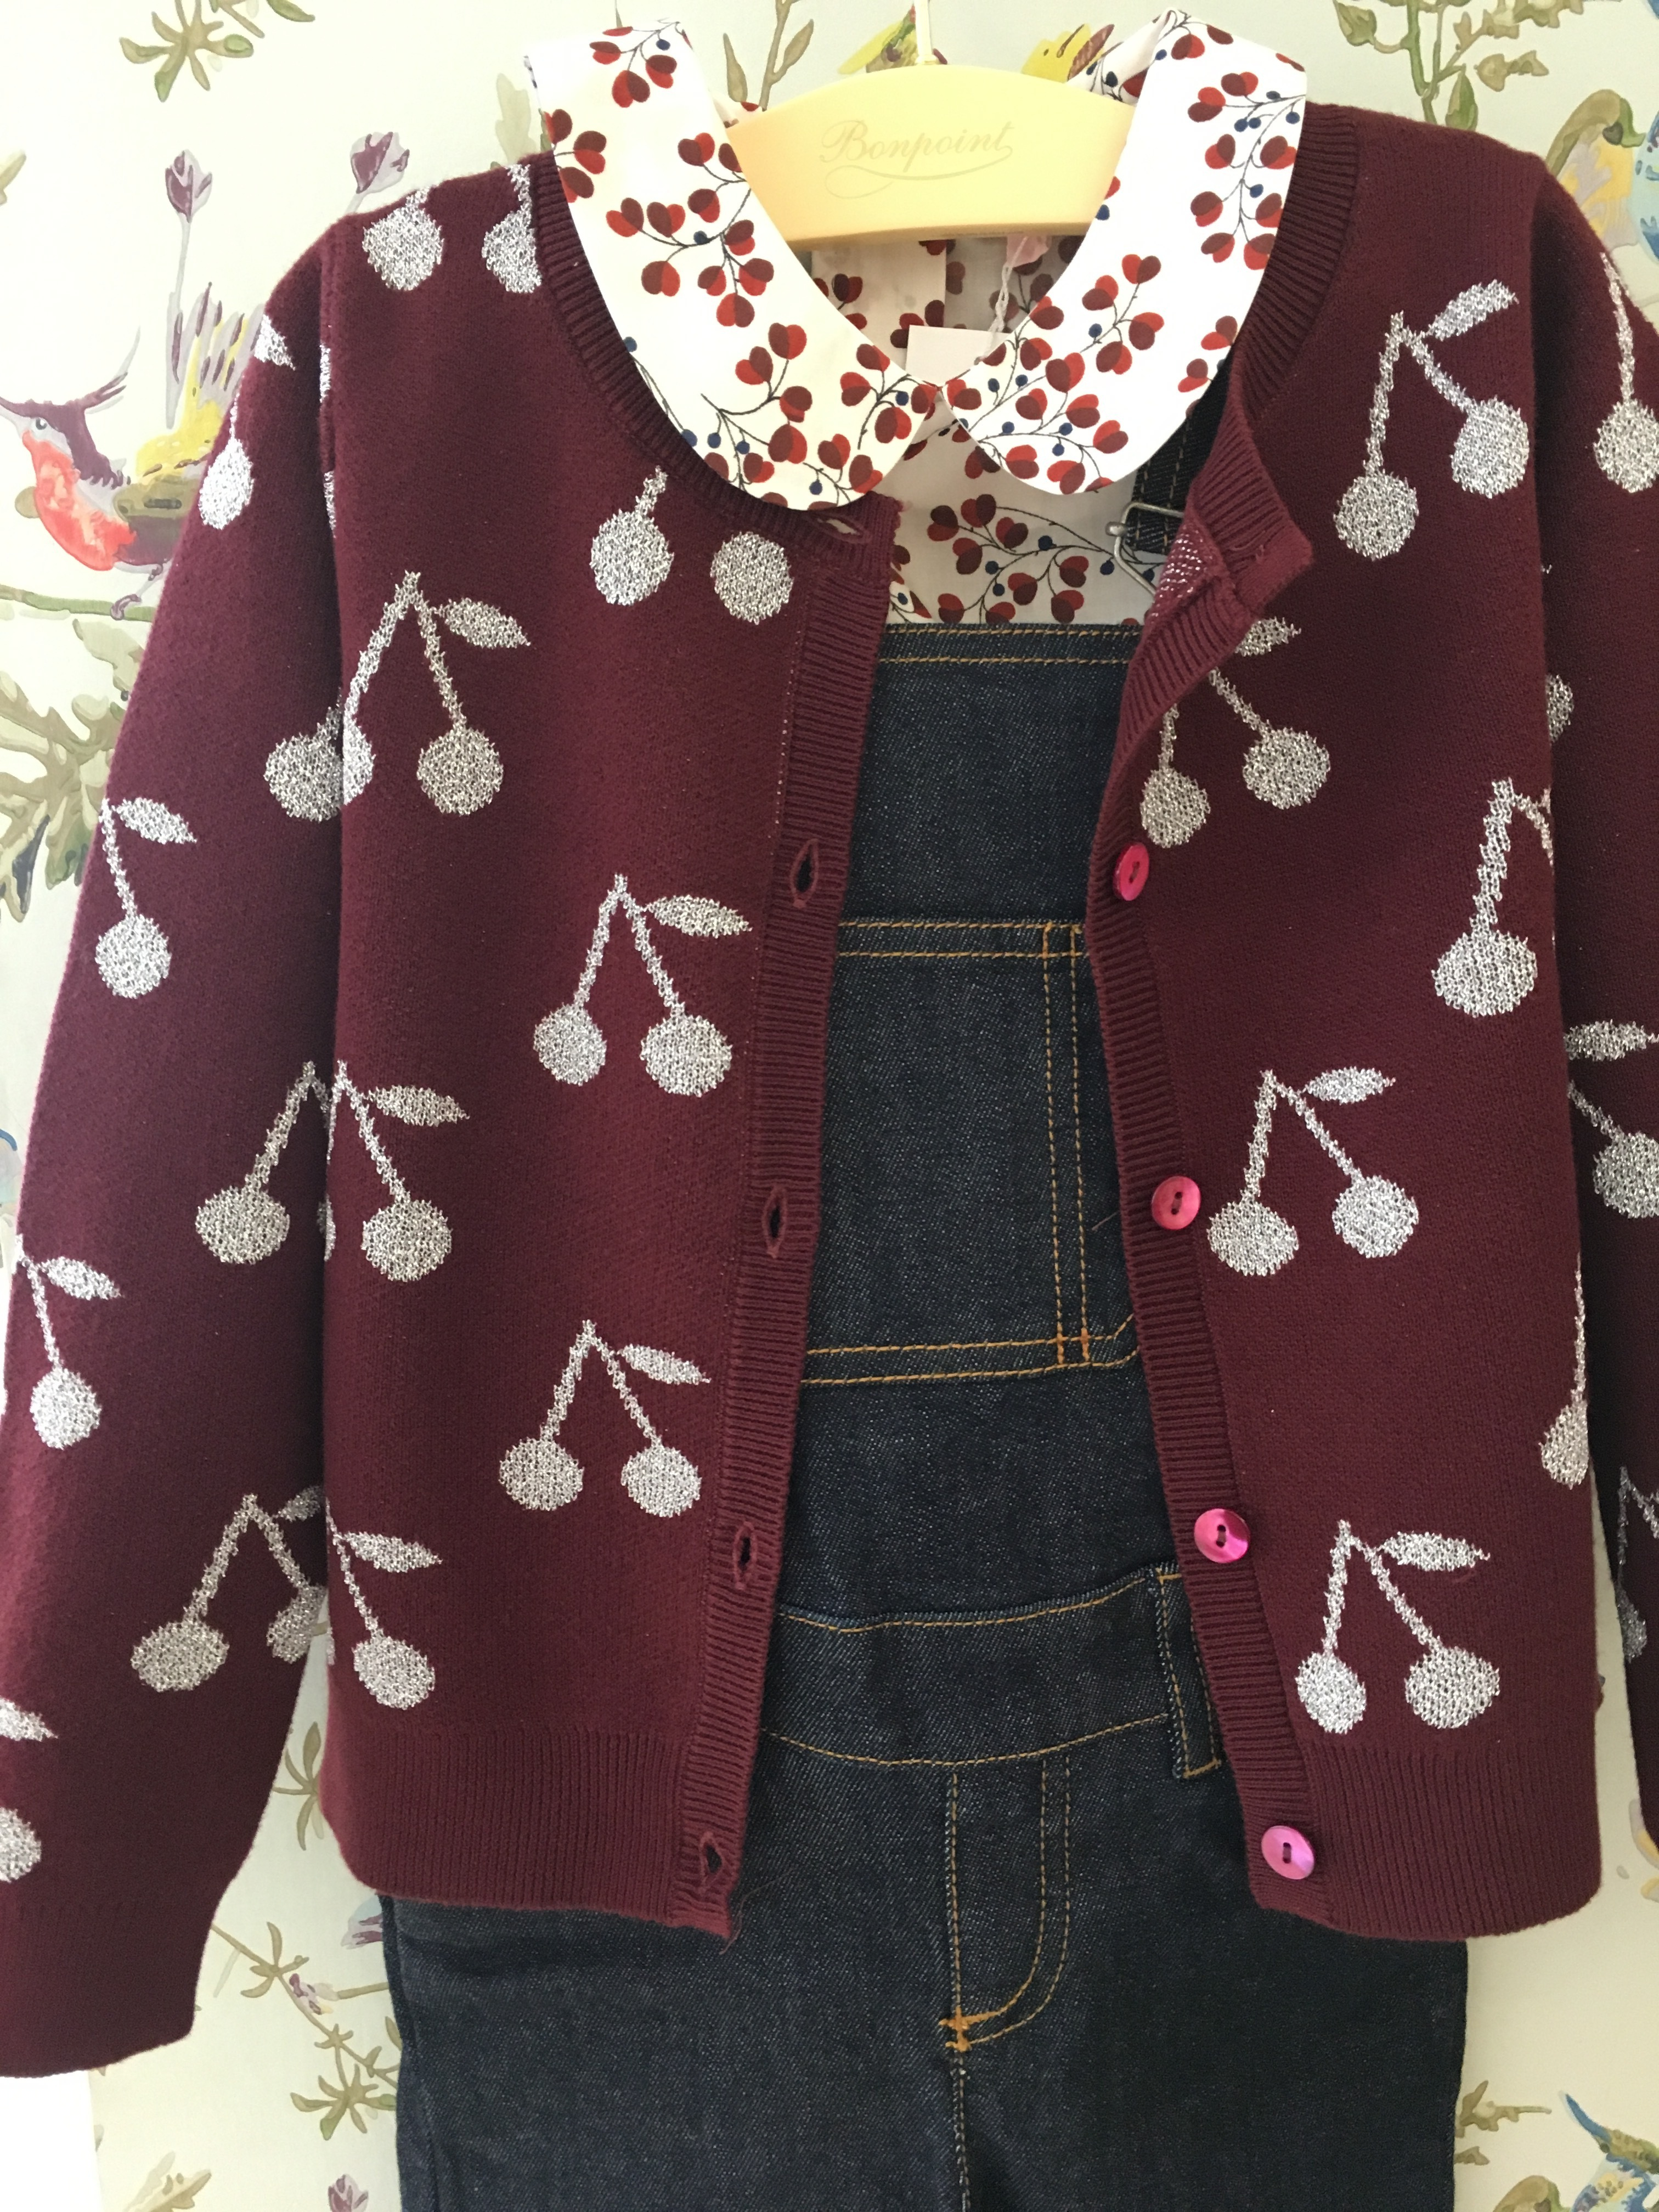 AW17☆FILLE カーディガン チェリー ボルドー 12A